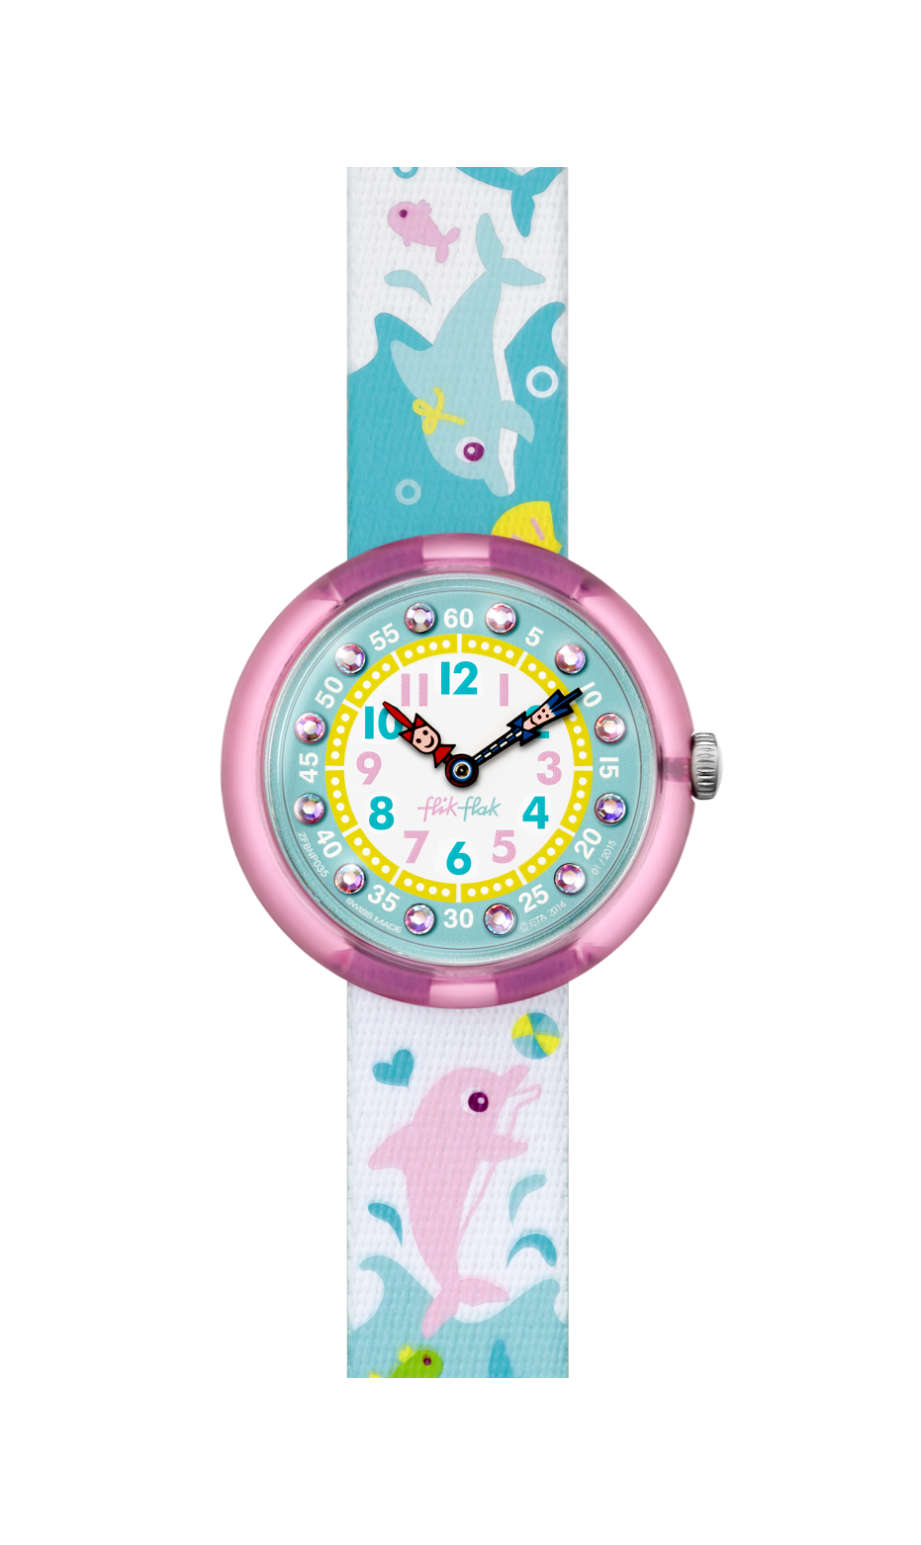 Flik Flak Splashy Dolphins, FBNP035, kids watch, blue, swatch for kids